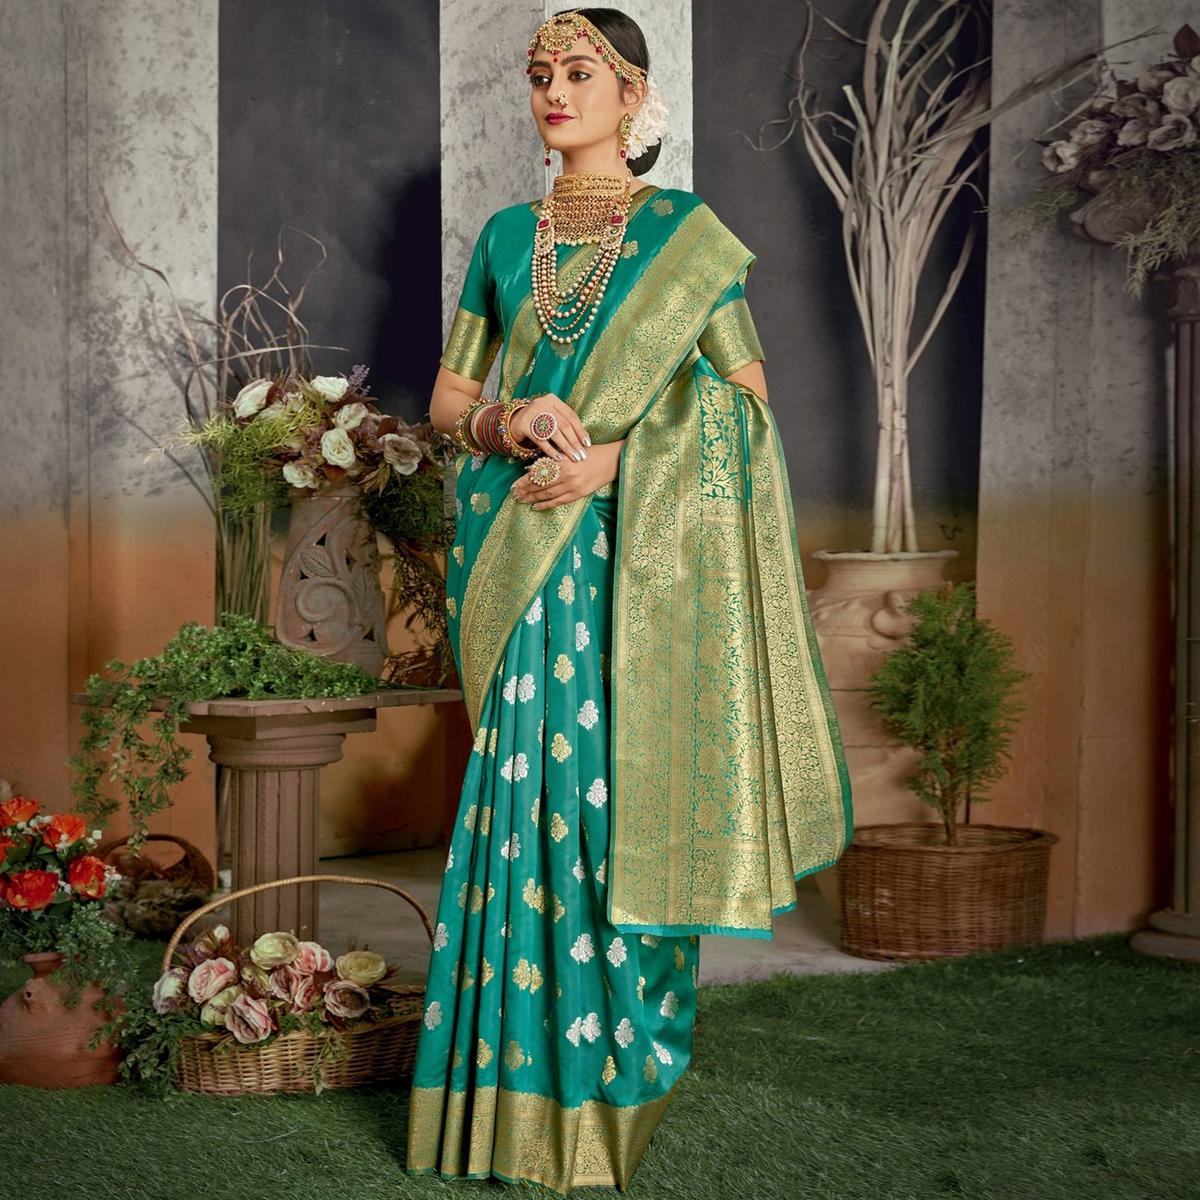 Triveni Turquoise Colored Jacquard Silk Party Wear Jacquard Woven Saree With Blouse Piece